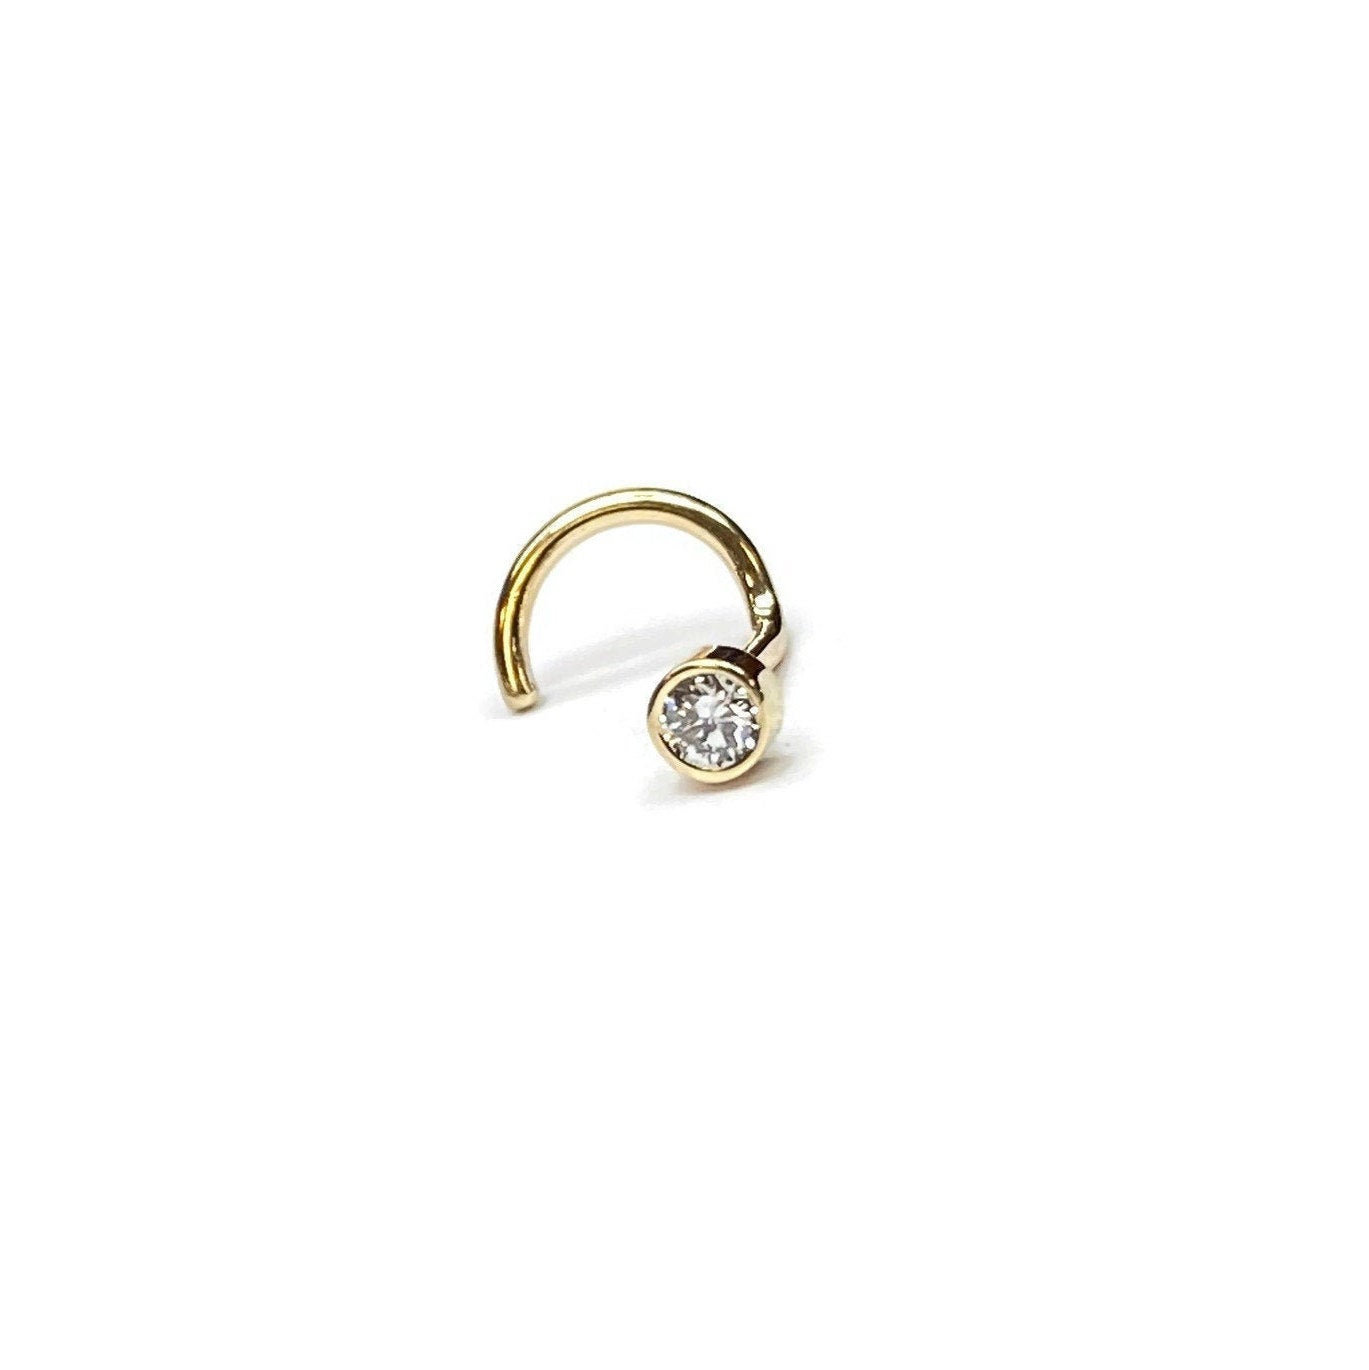 Genuine Diamond Nose Stud in Solid 14 Karat Yellow Gold